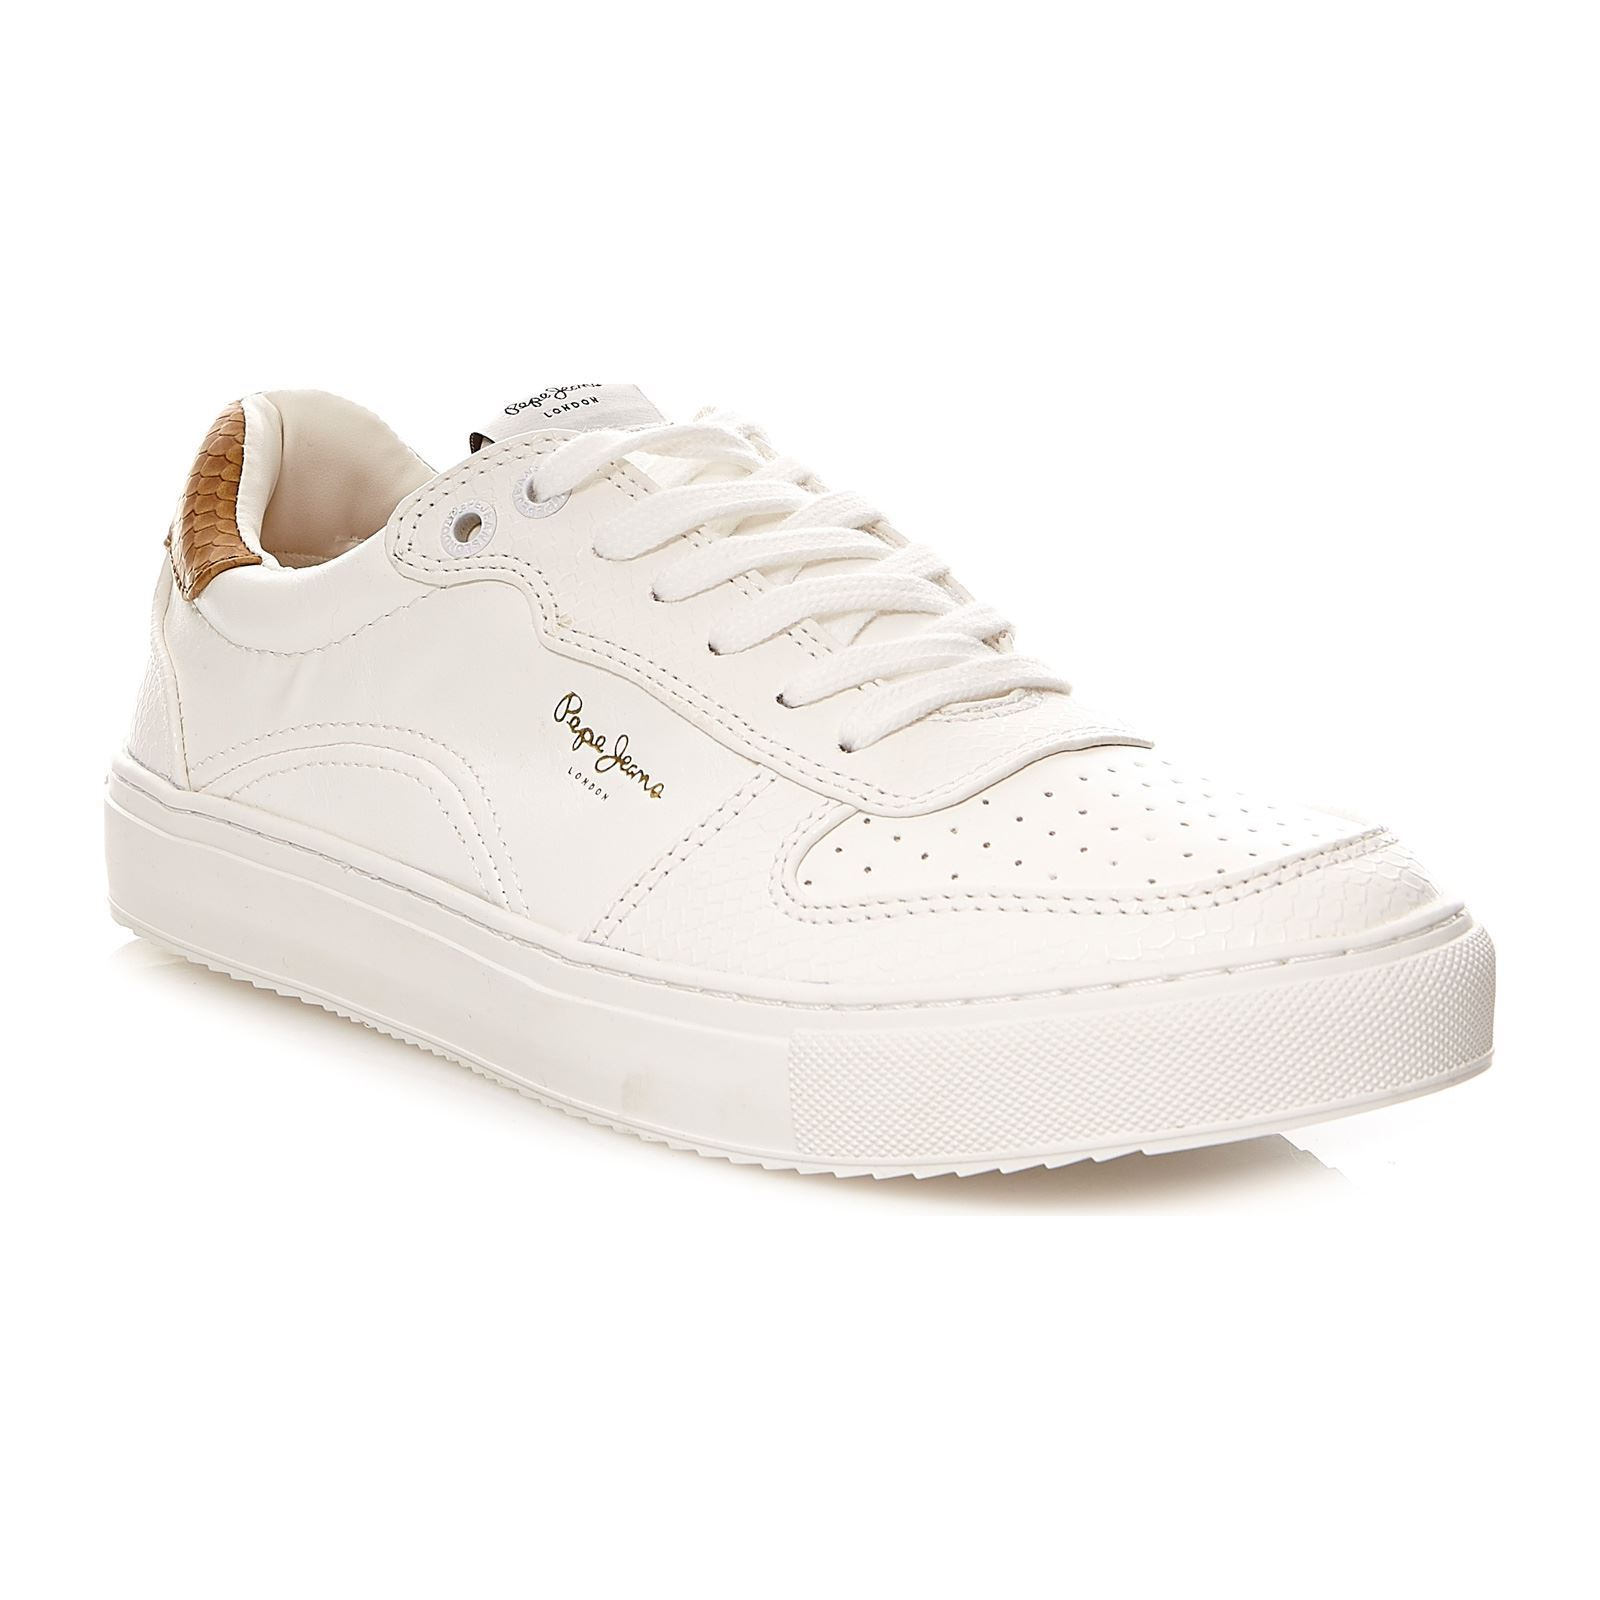 Pepe Jeans Footwear Adams Smart - Sneakers - blanc